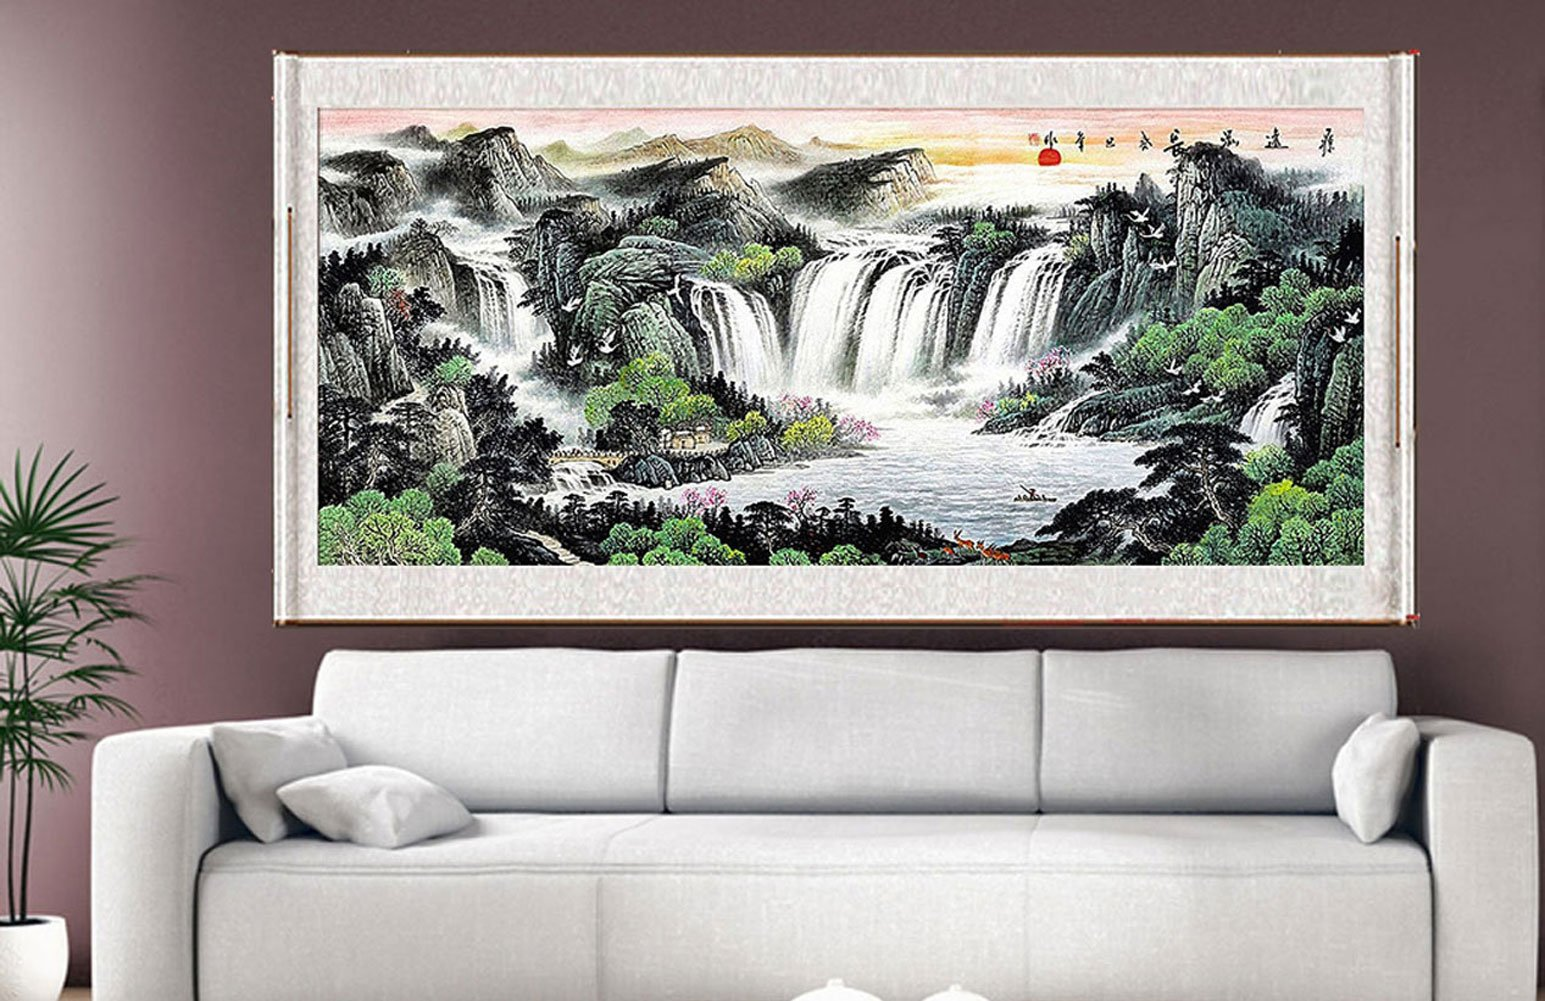 Buy Waterfall Painting Feng Shui Fountain Water Asian Wall Art Prints Decor Large Scroll Chinese Feng Shui Landscape Paintings For Christmas Home Office Living Room 70 X25 In Cheap Price On Alibaba Com